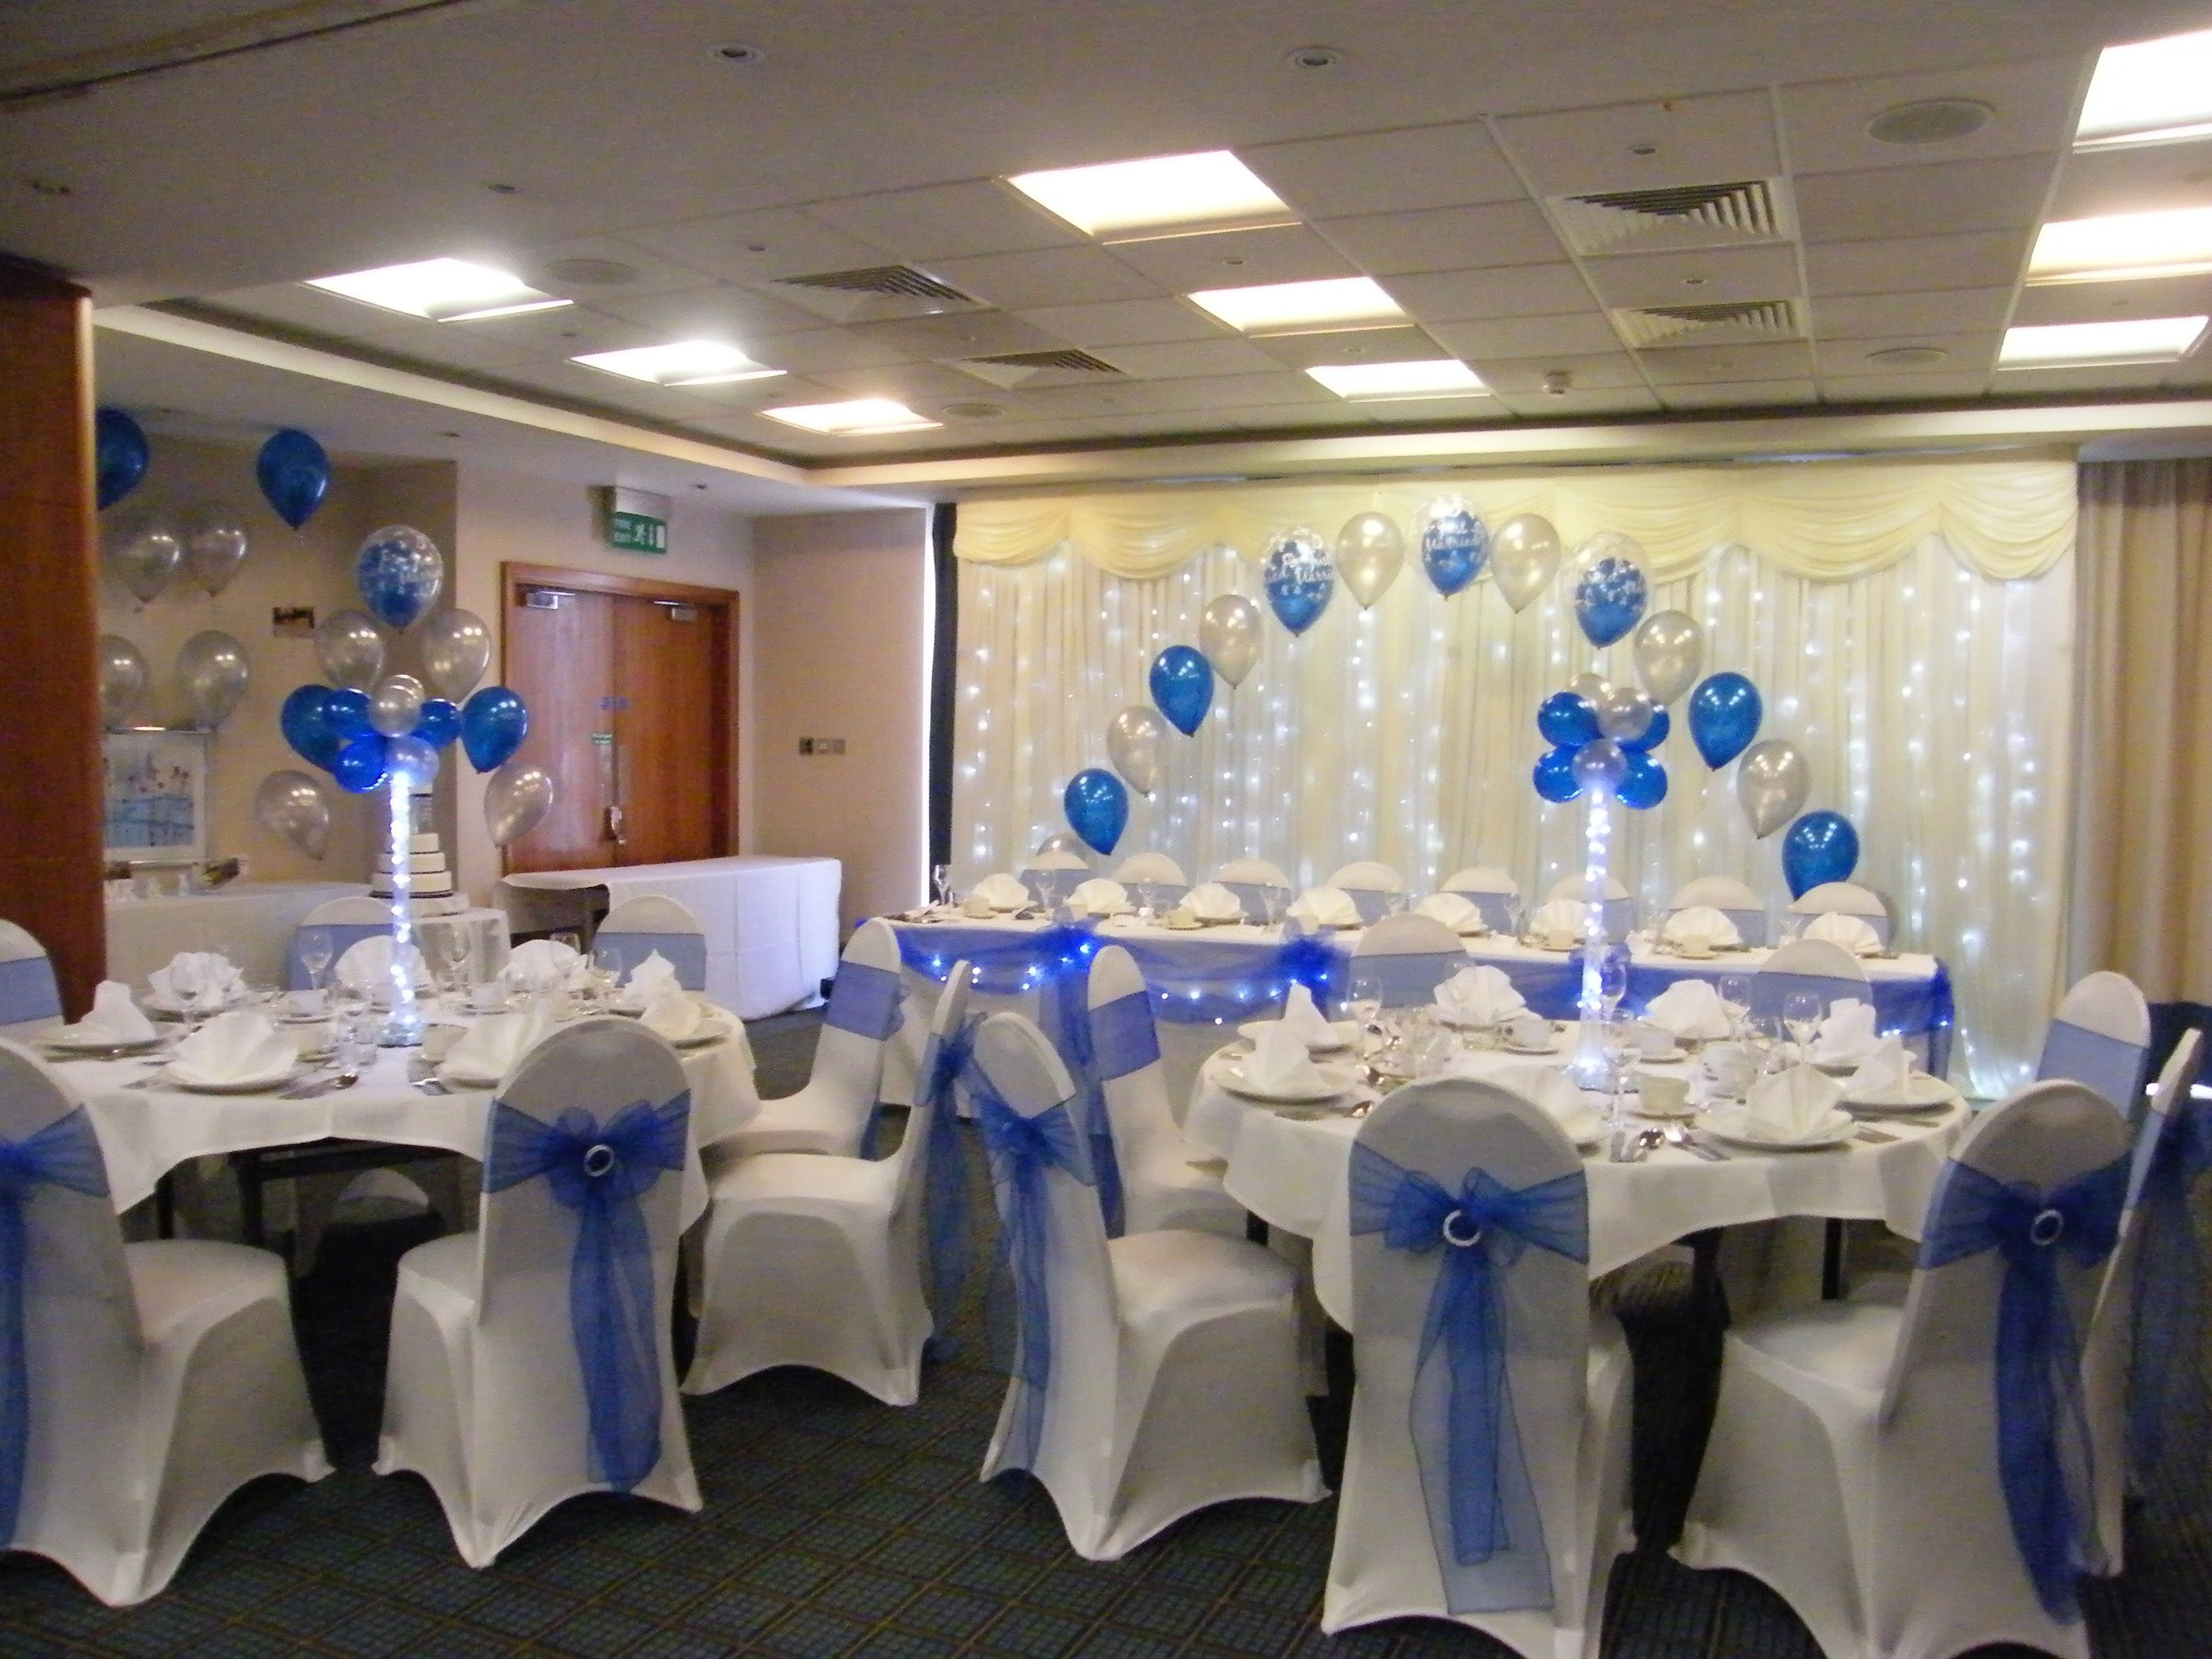 Wedding venue decorations chair covers balloons and for Pictures of wedding venues decorated